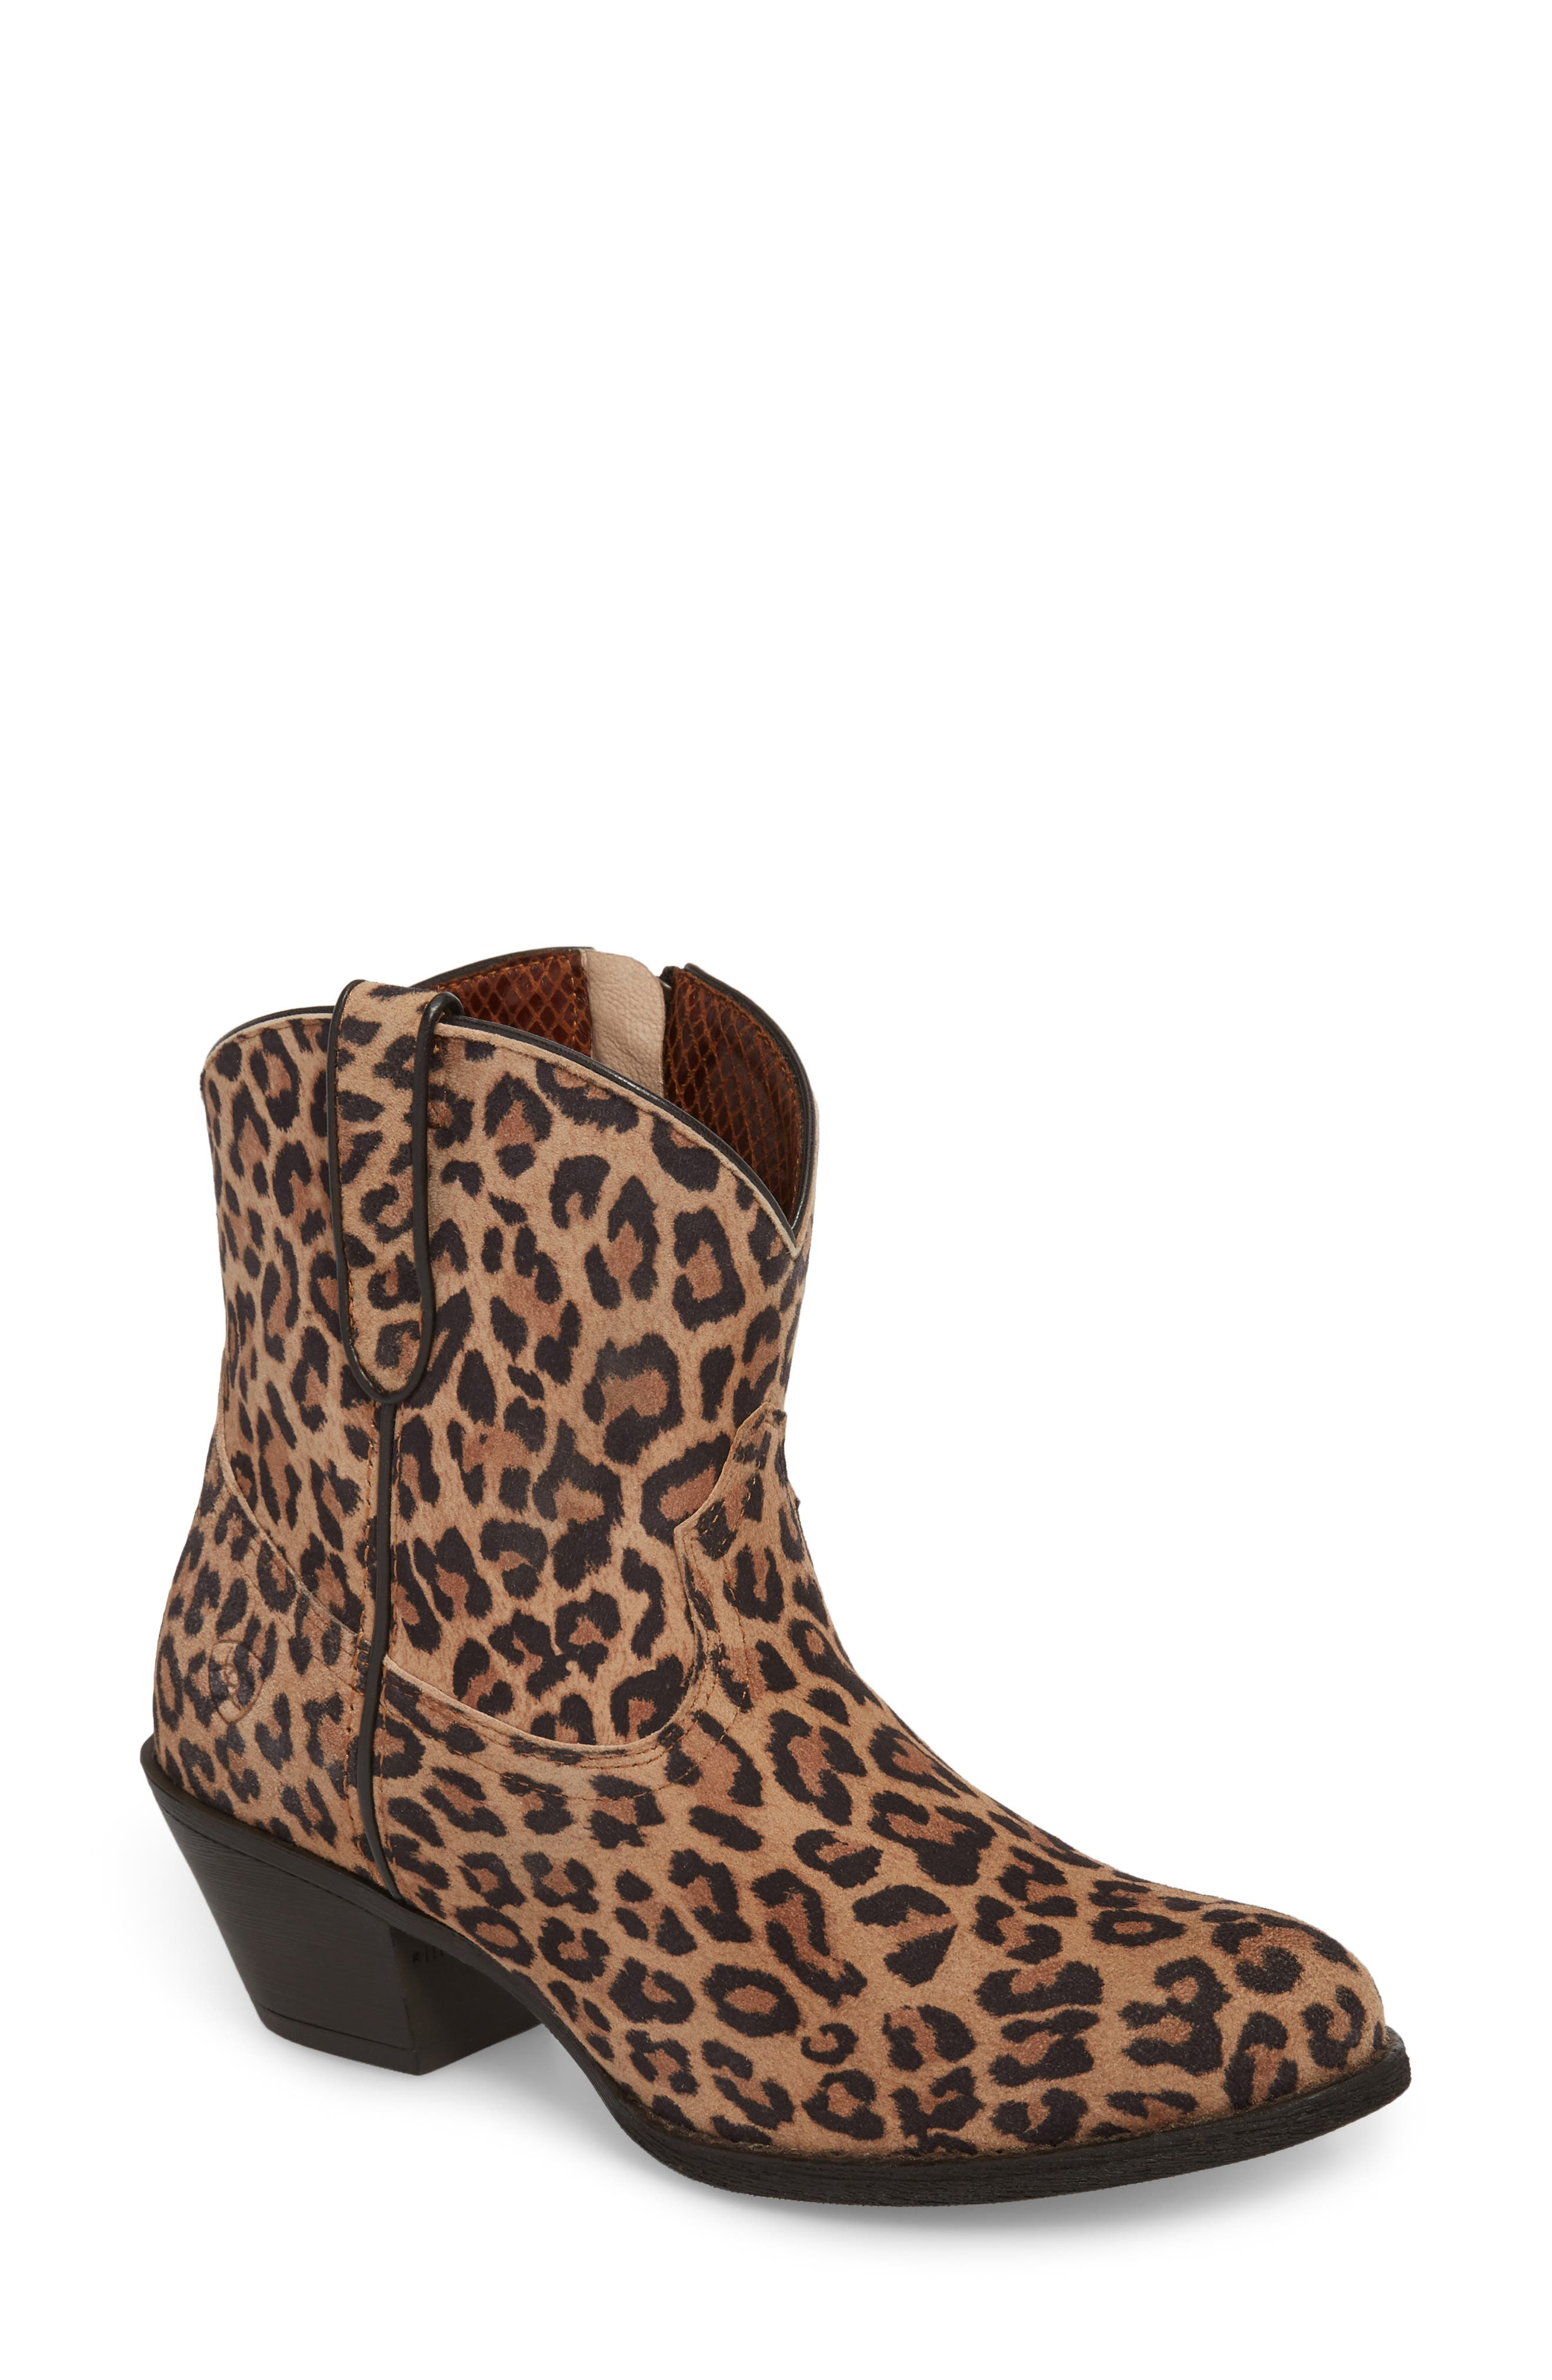 Darlin Short Western Boot,                             Main thumbnail 1, color,                             LEOPARD PRINT LEATHER